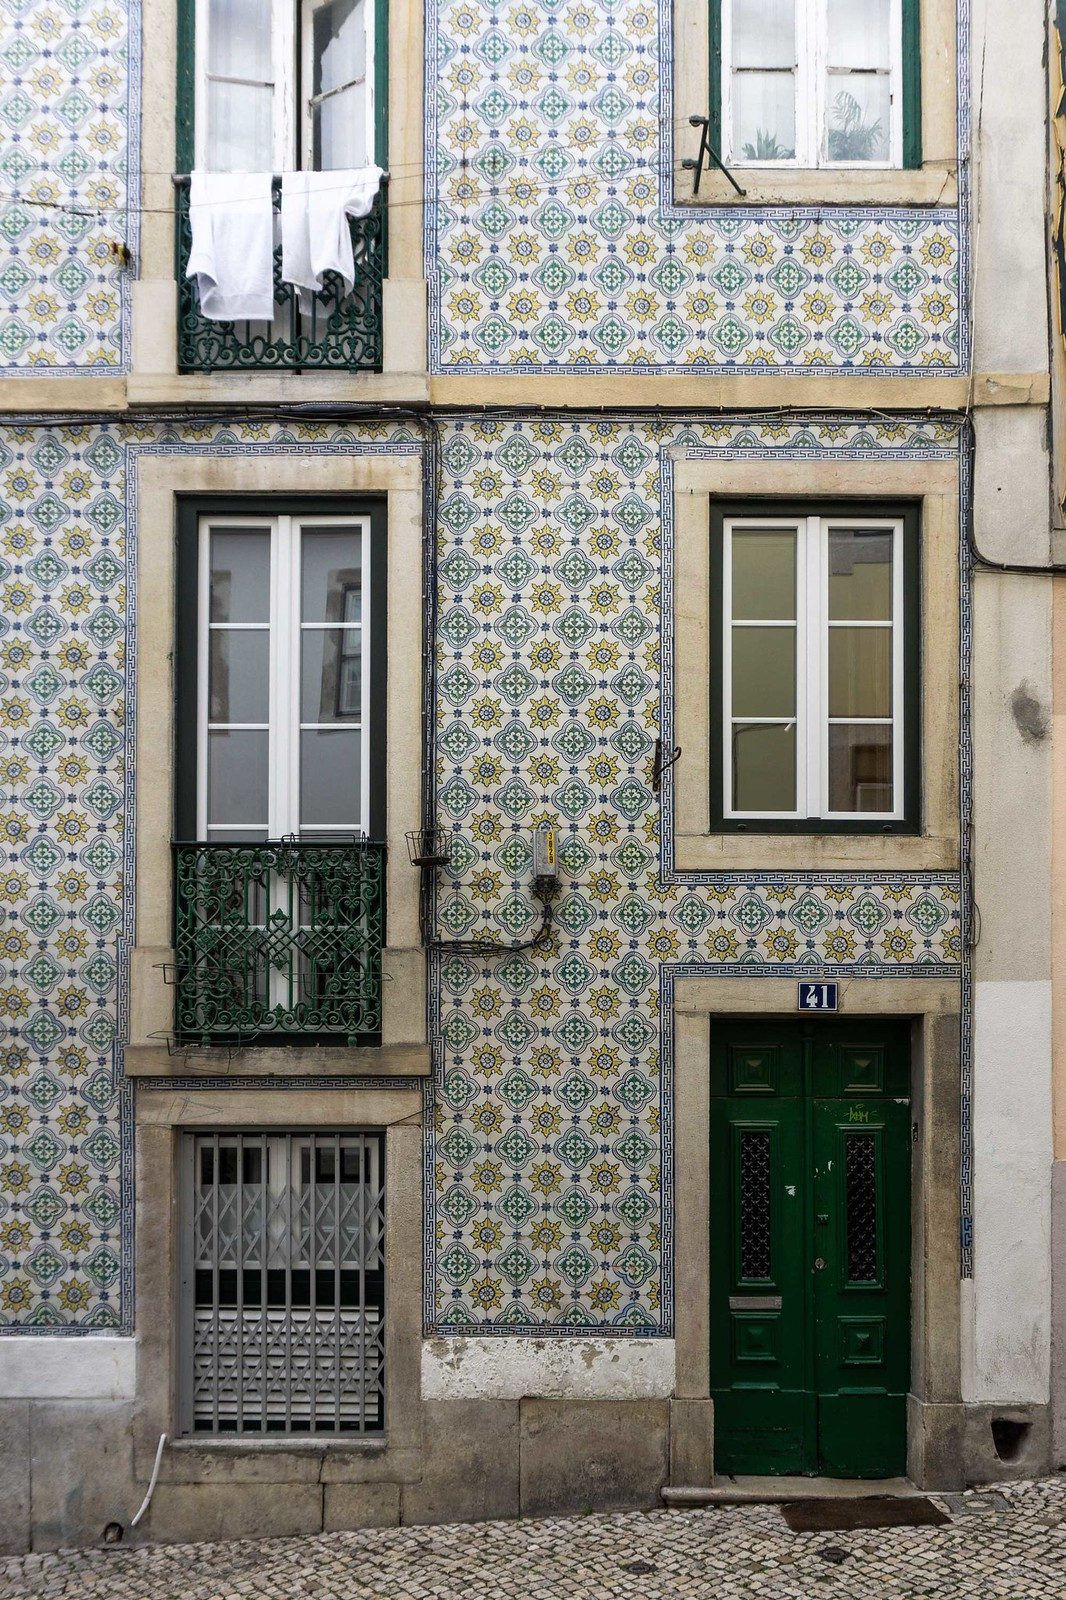 10 Places I Want to Travel After COVID-19 | Places to Travel after Lockdown is Over | Travel Aesthetic | Portuguese Aesthetic | Lisbon, Portugal |  Green Azulejo Tiles